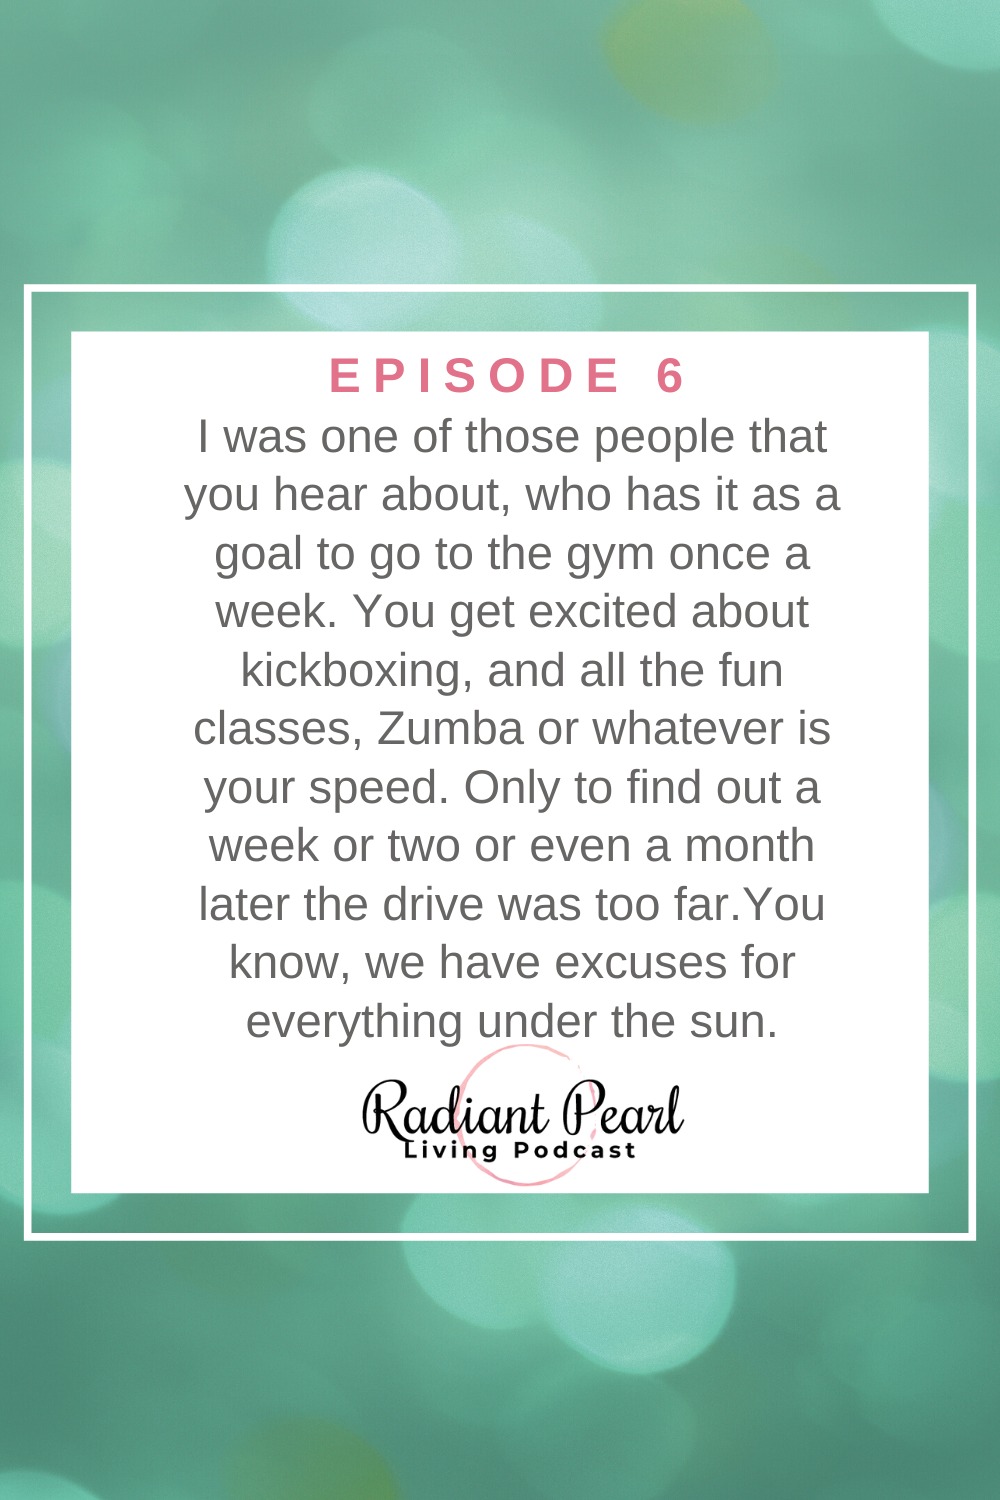 Stick to a great plan to improve your health with a gym routine and essential oils. Radiant Pearl Living-RPL Live with Stacy Zant Episode 6 Features End of the Month Thoughts, Scripture reading on How to Find Perfect Peace and Goals for Great Health.